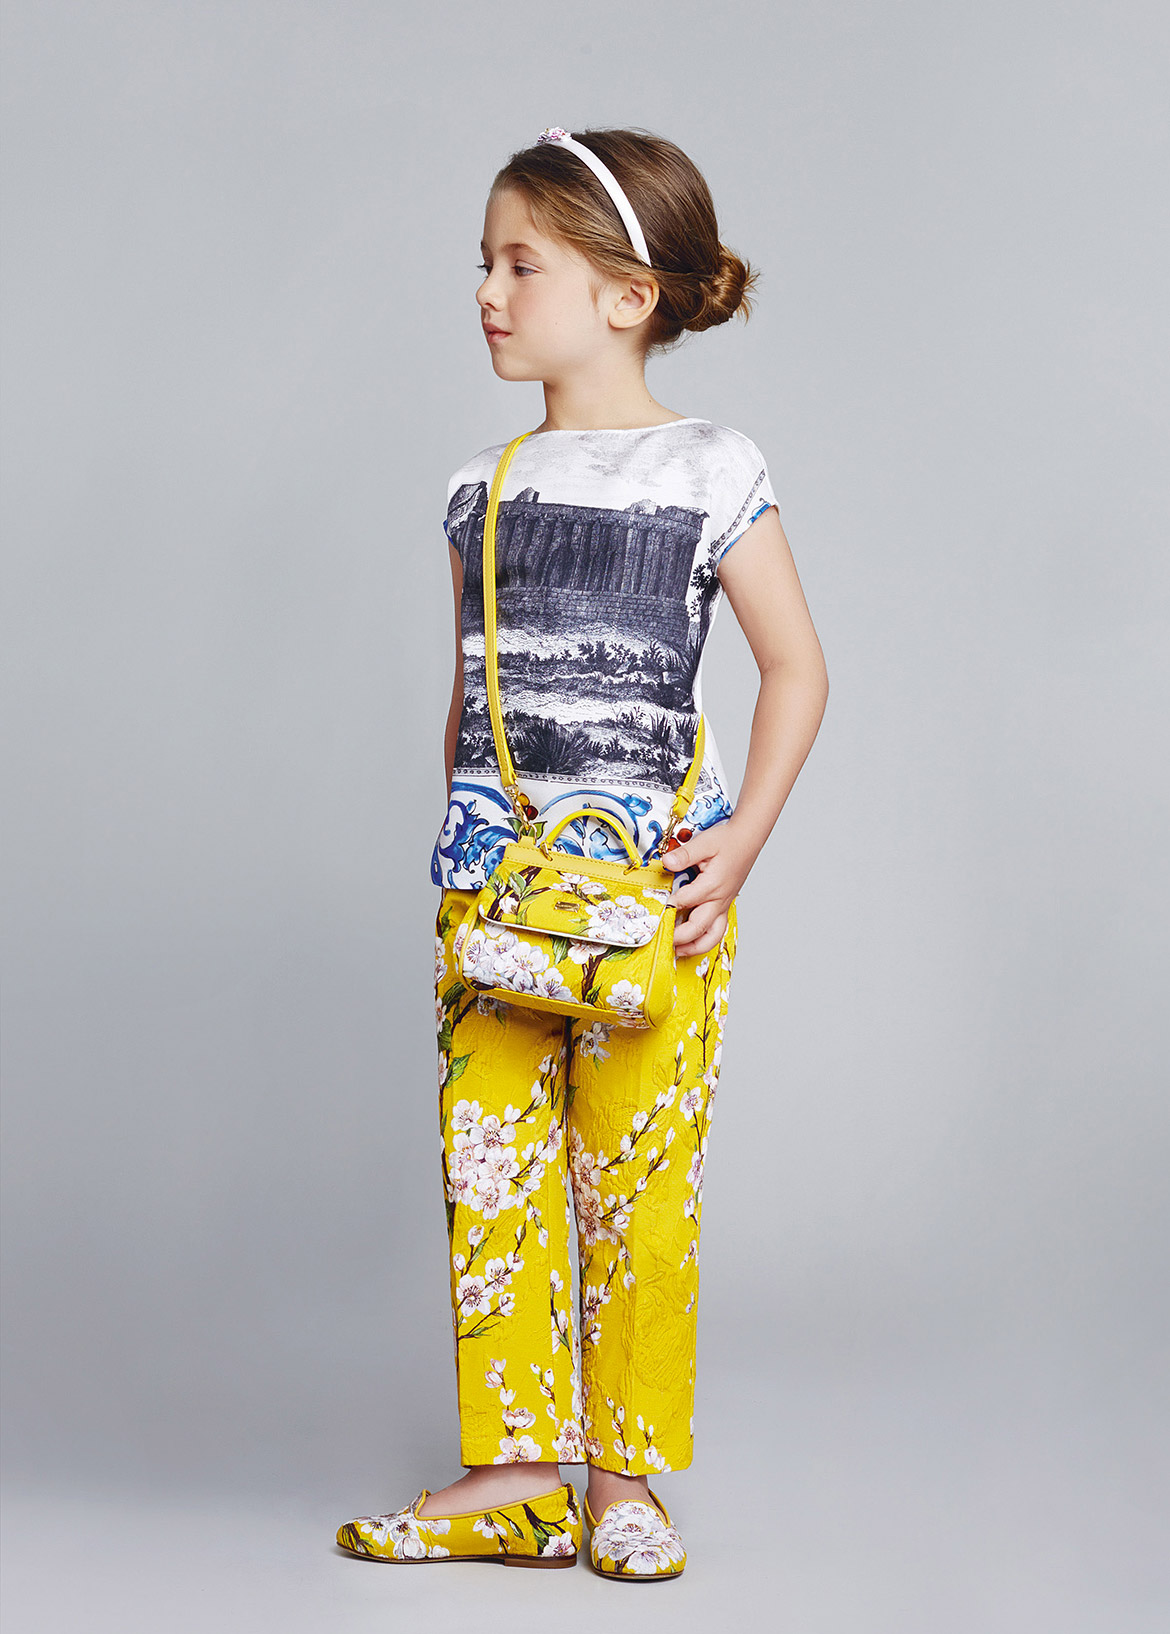 dolce-and-gabbana-ss-2014-child-collection (24)